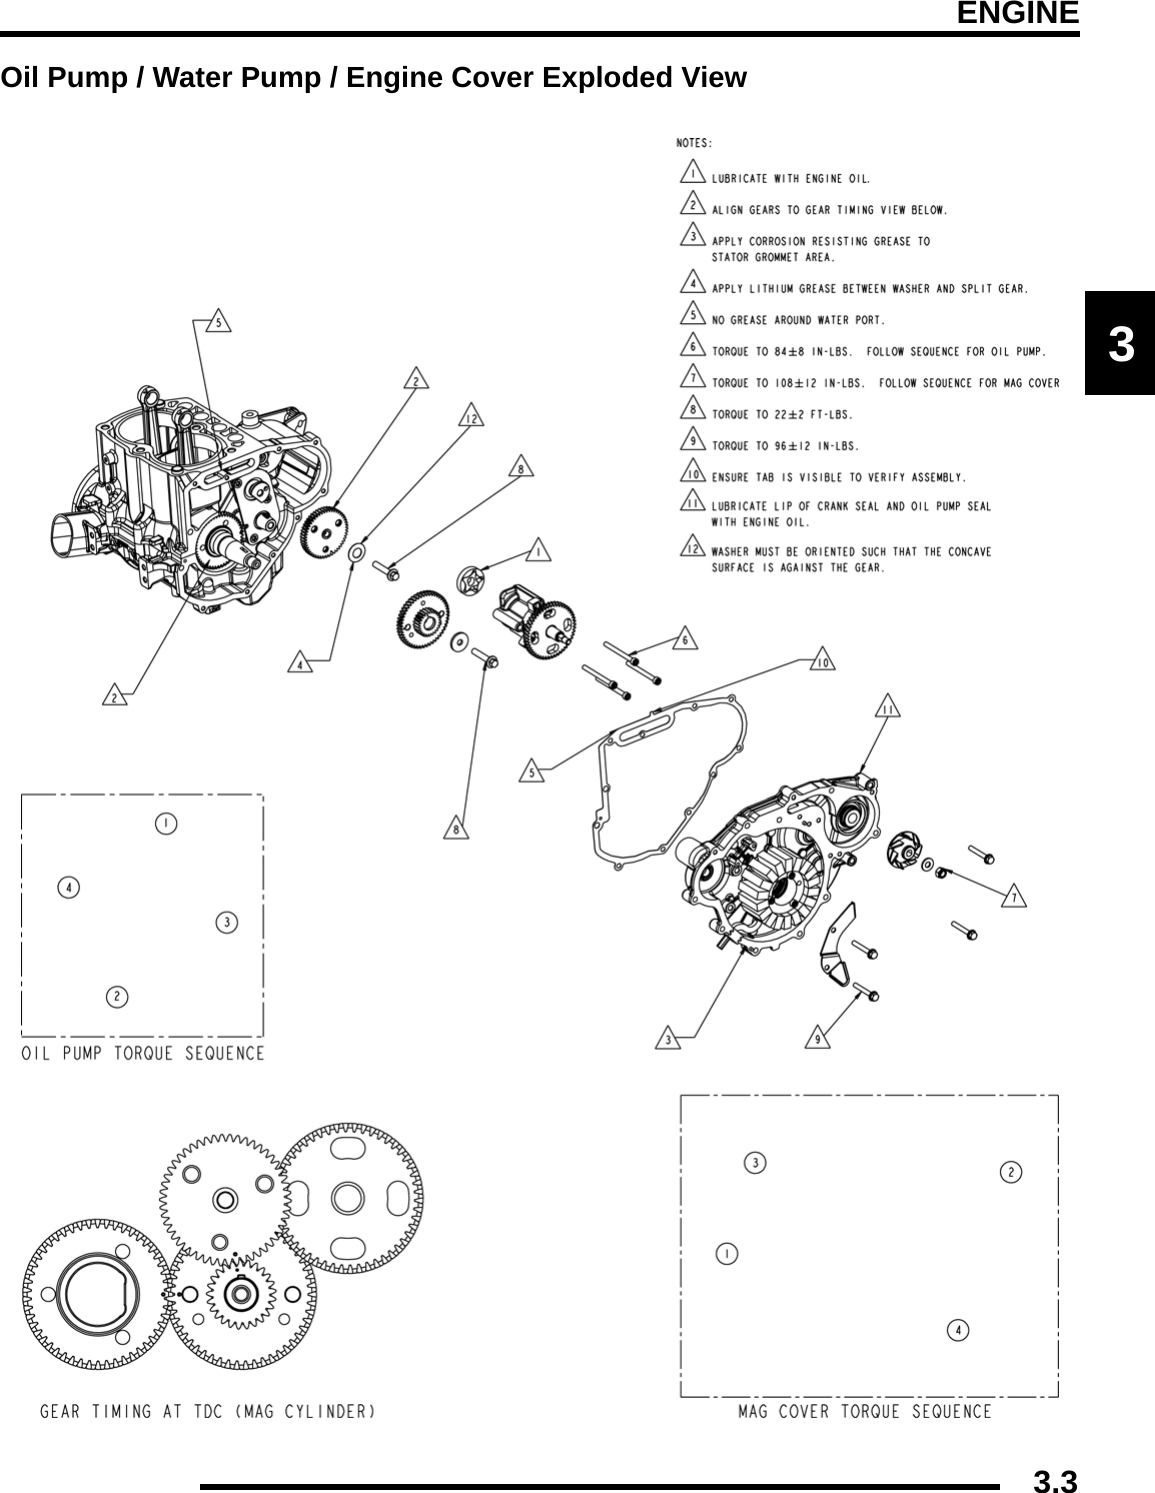 9921278 Rzr 800 2008 Polaris Service Manual Grommet 3 1 Engine Diagram 33engine3oil Pump Water Cover Exploded View